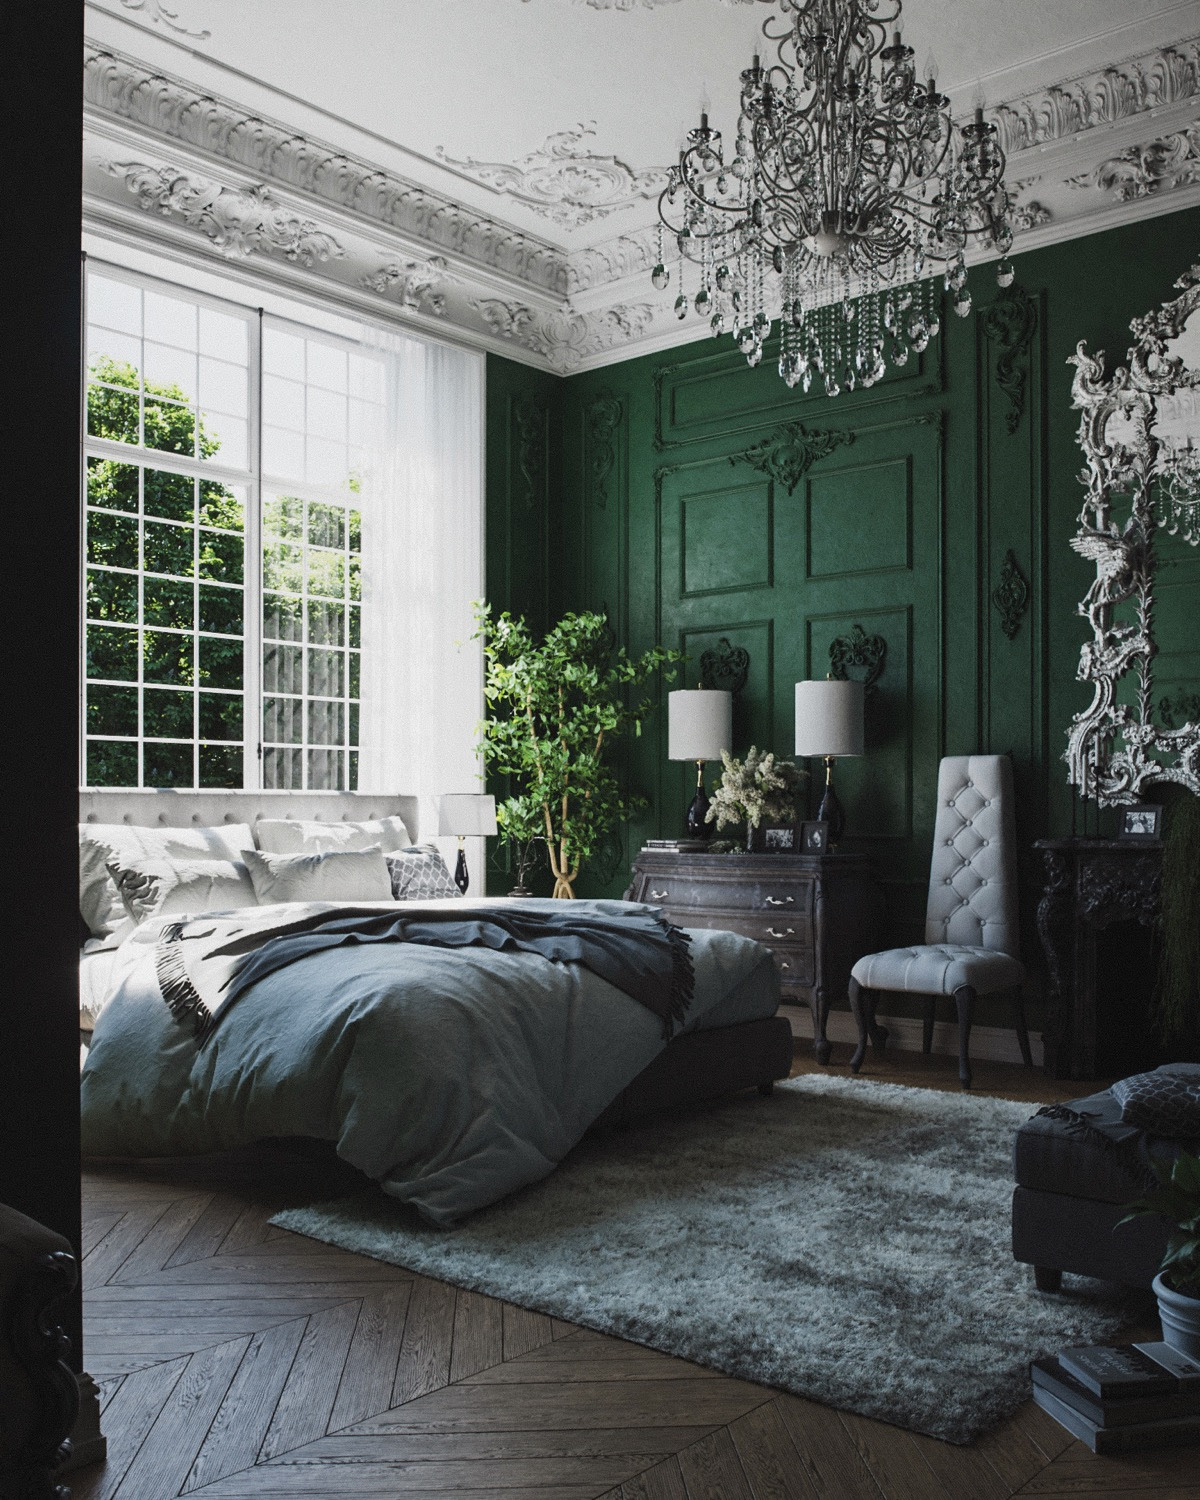 51 Green Bedrooms With Tips And Accessories To Help You Design Yours